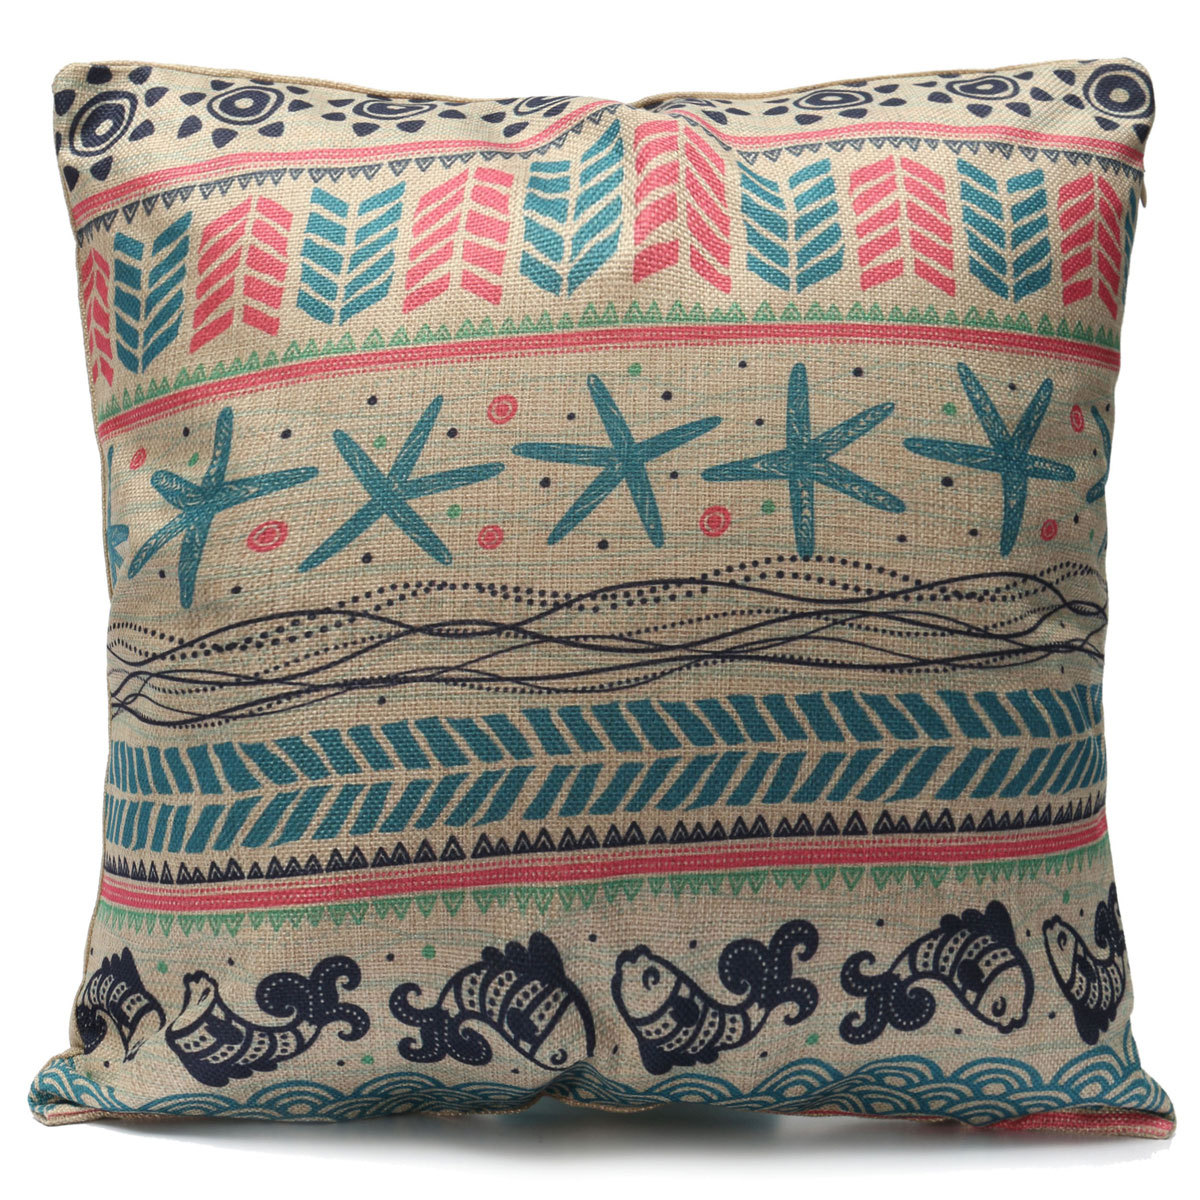 Vintage colorful geometry bohemian pillow case cushion for Decor pillows